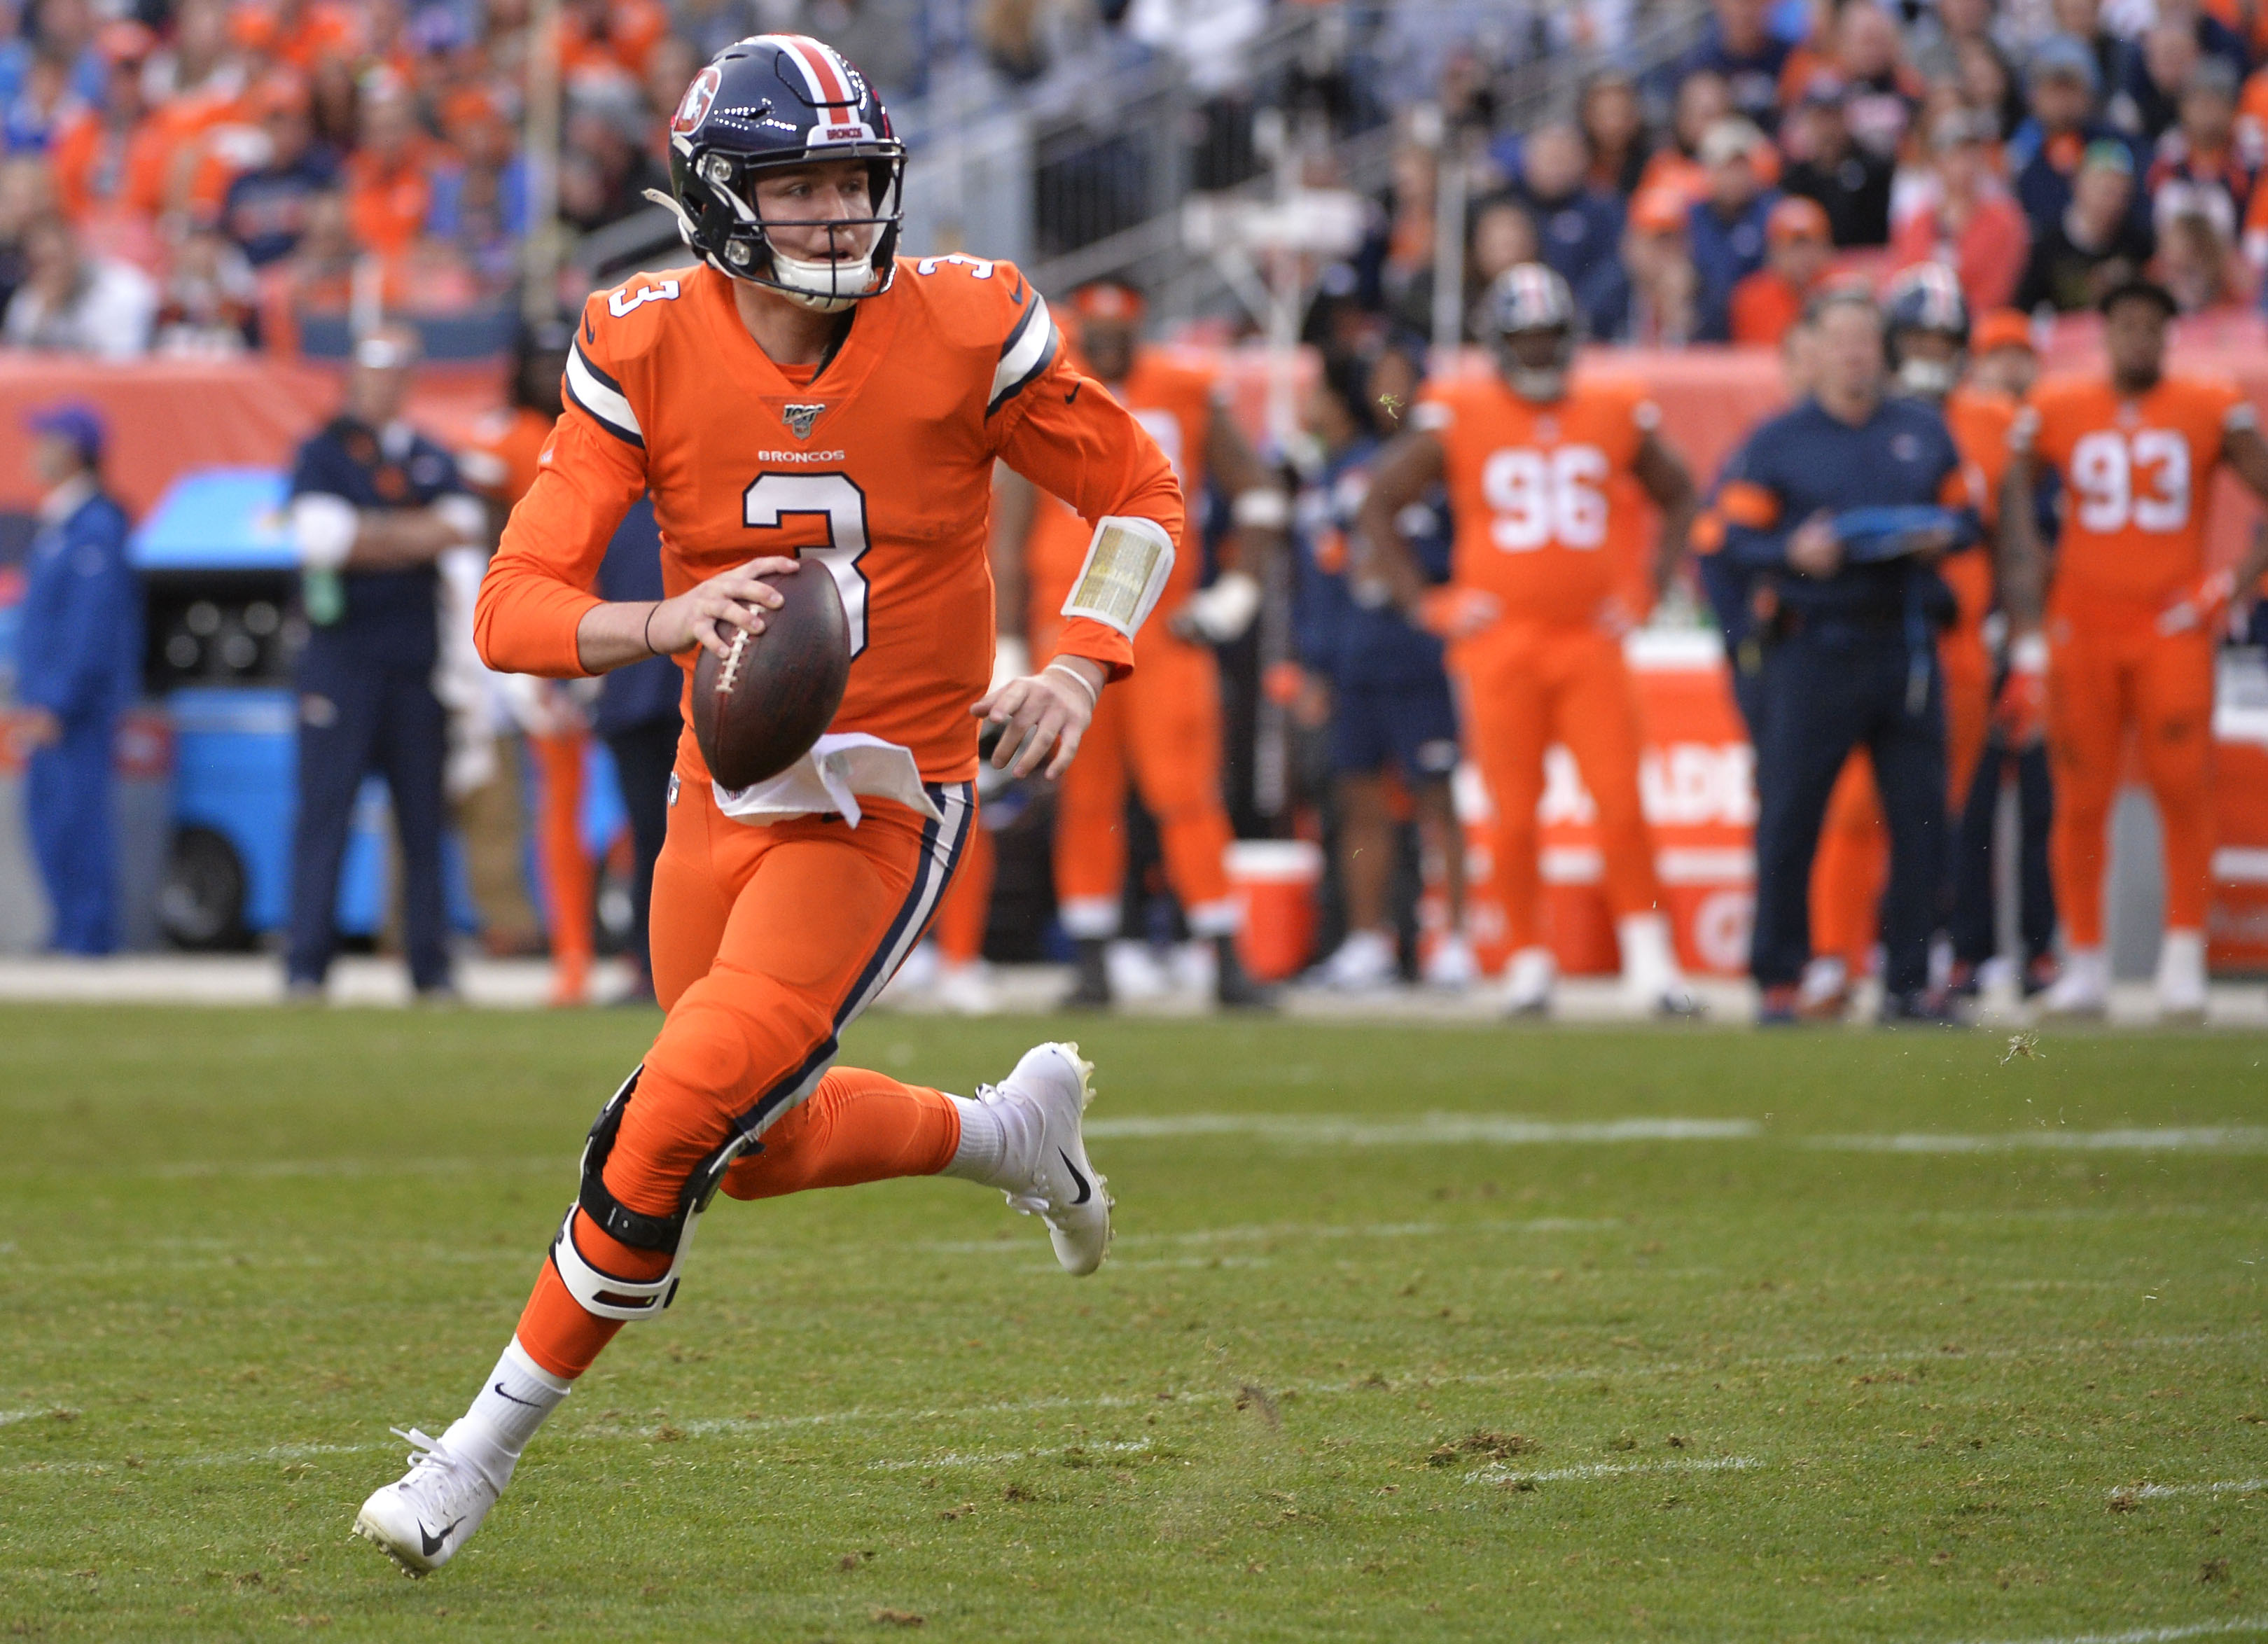 Denver Broncos quarterback player, Drew Lock, running down NFL field holding football